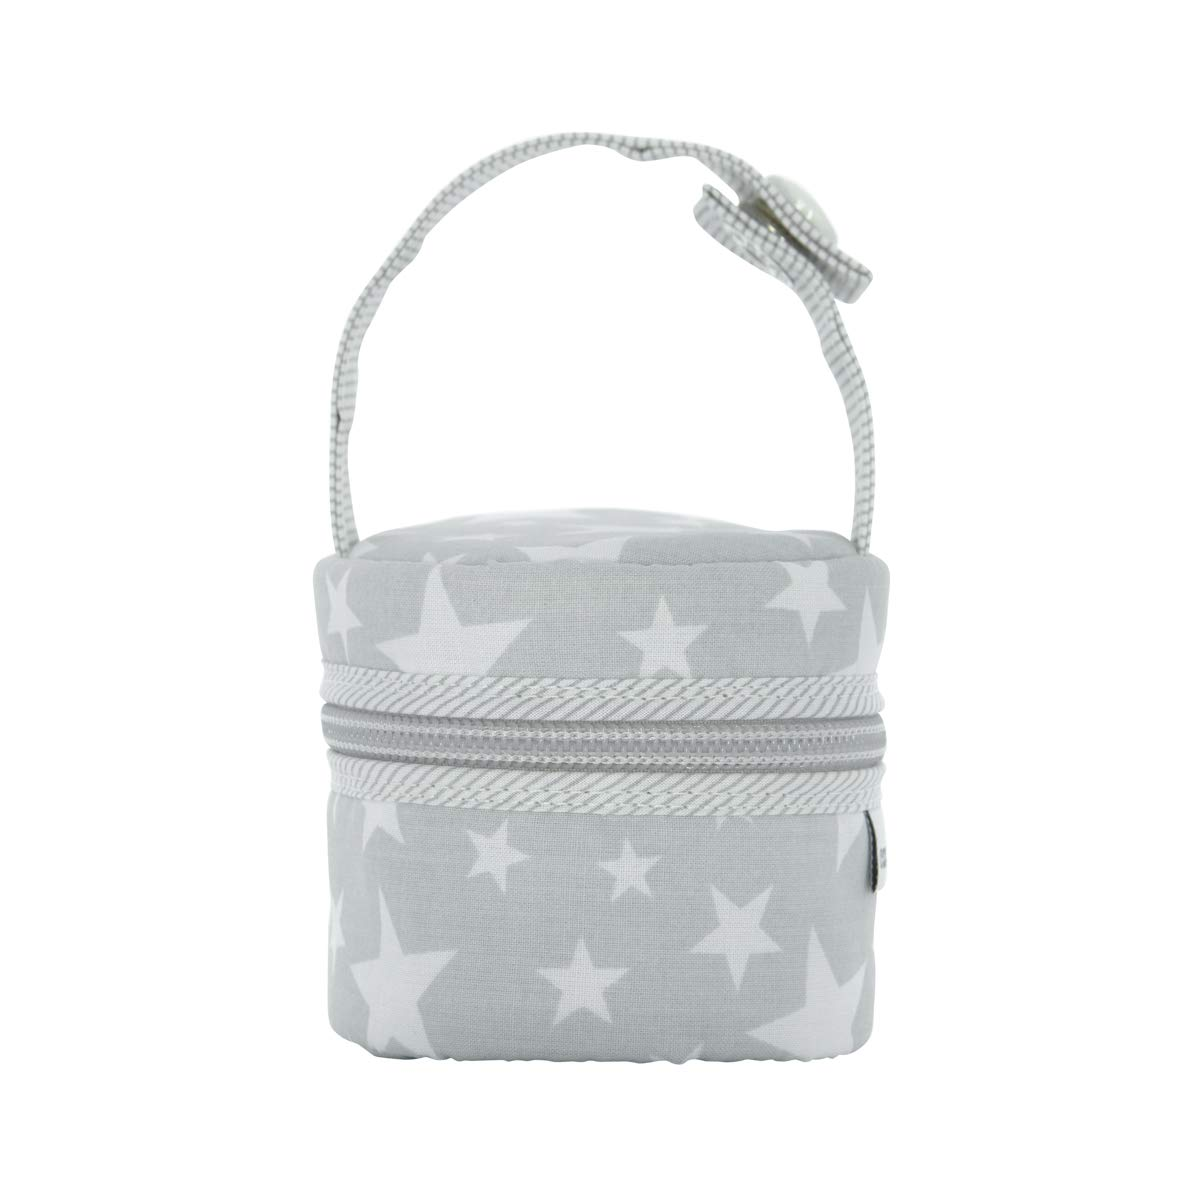 Cambrass Star - Portachupete, color gris de Cambrass